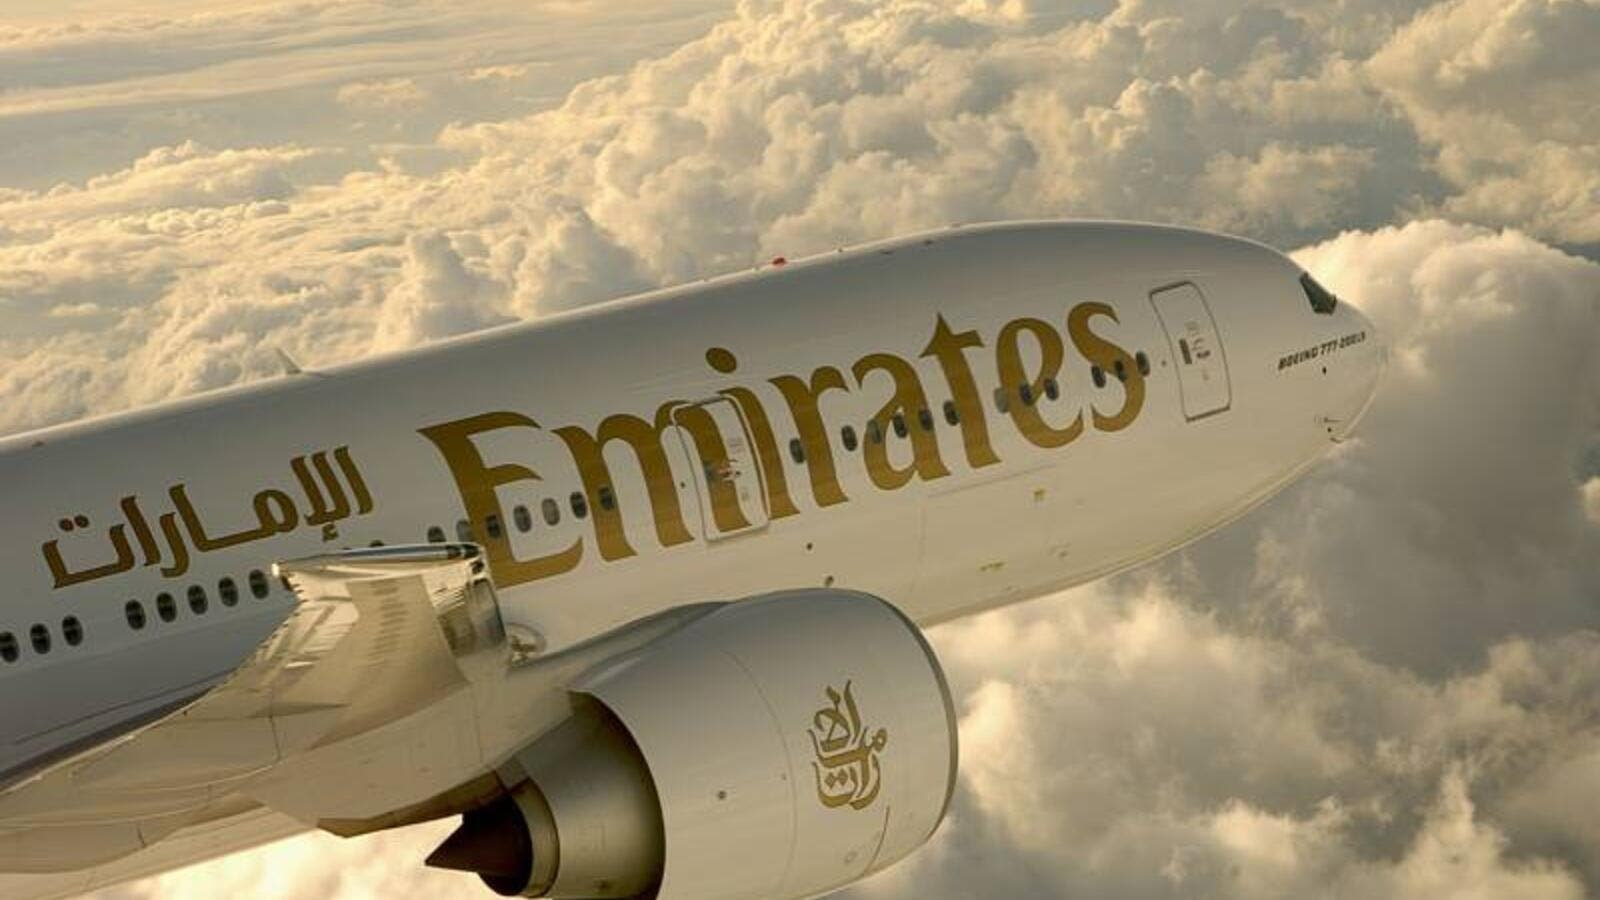 The second phase of DWC expansion will be to increase capacity to 120 million passengers a year ahead of Emirates' planned move. (File photo)